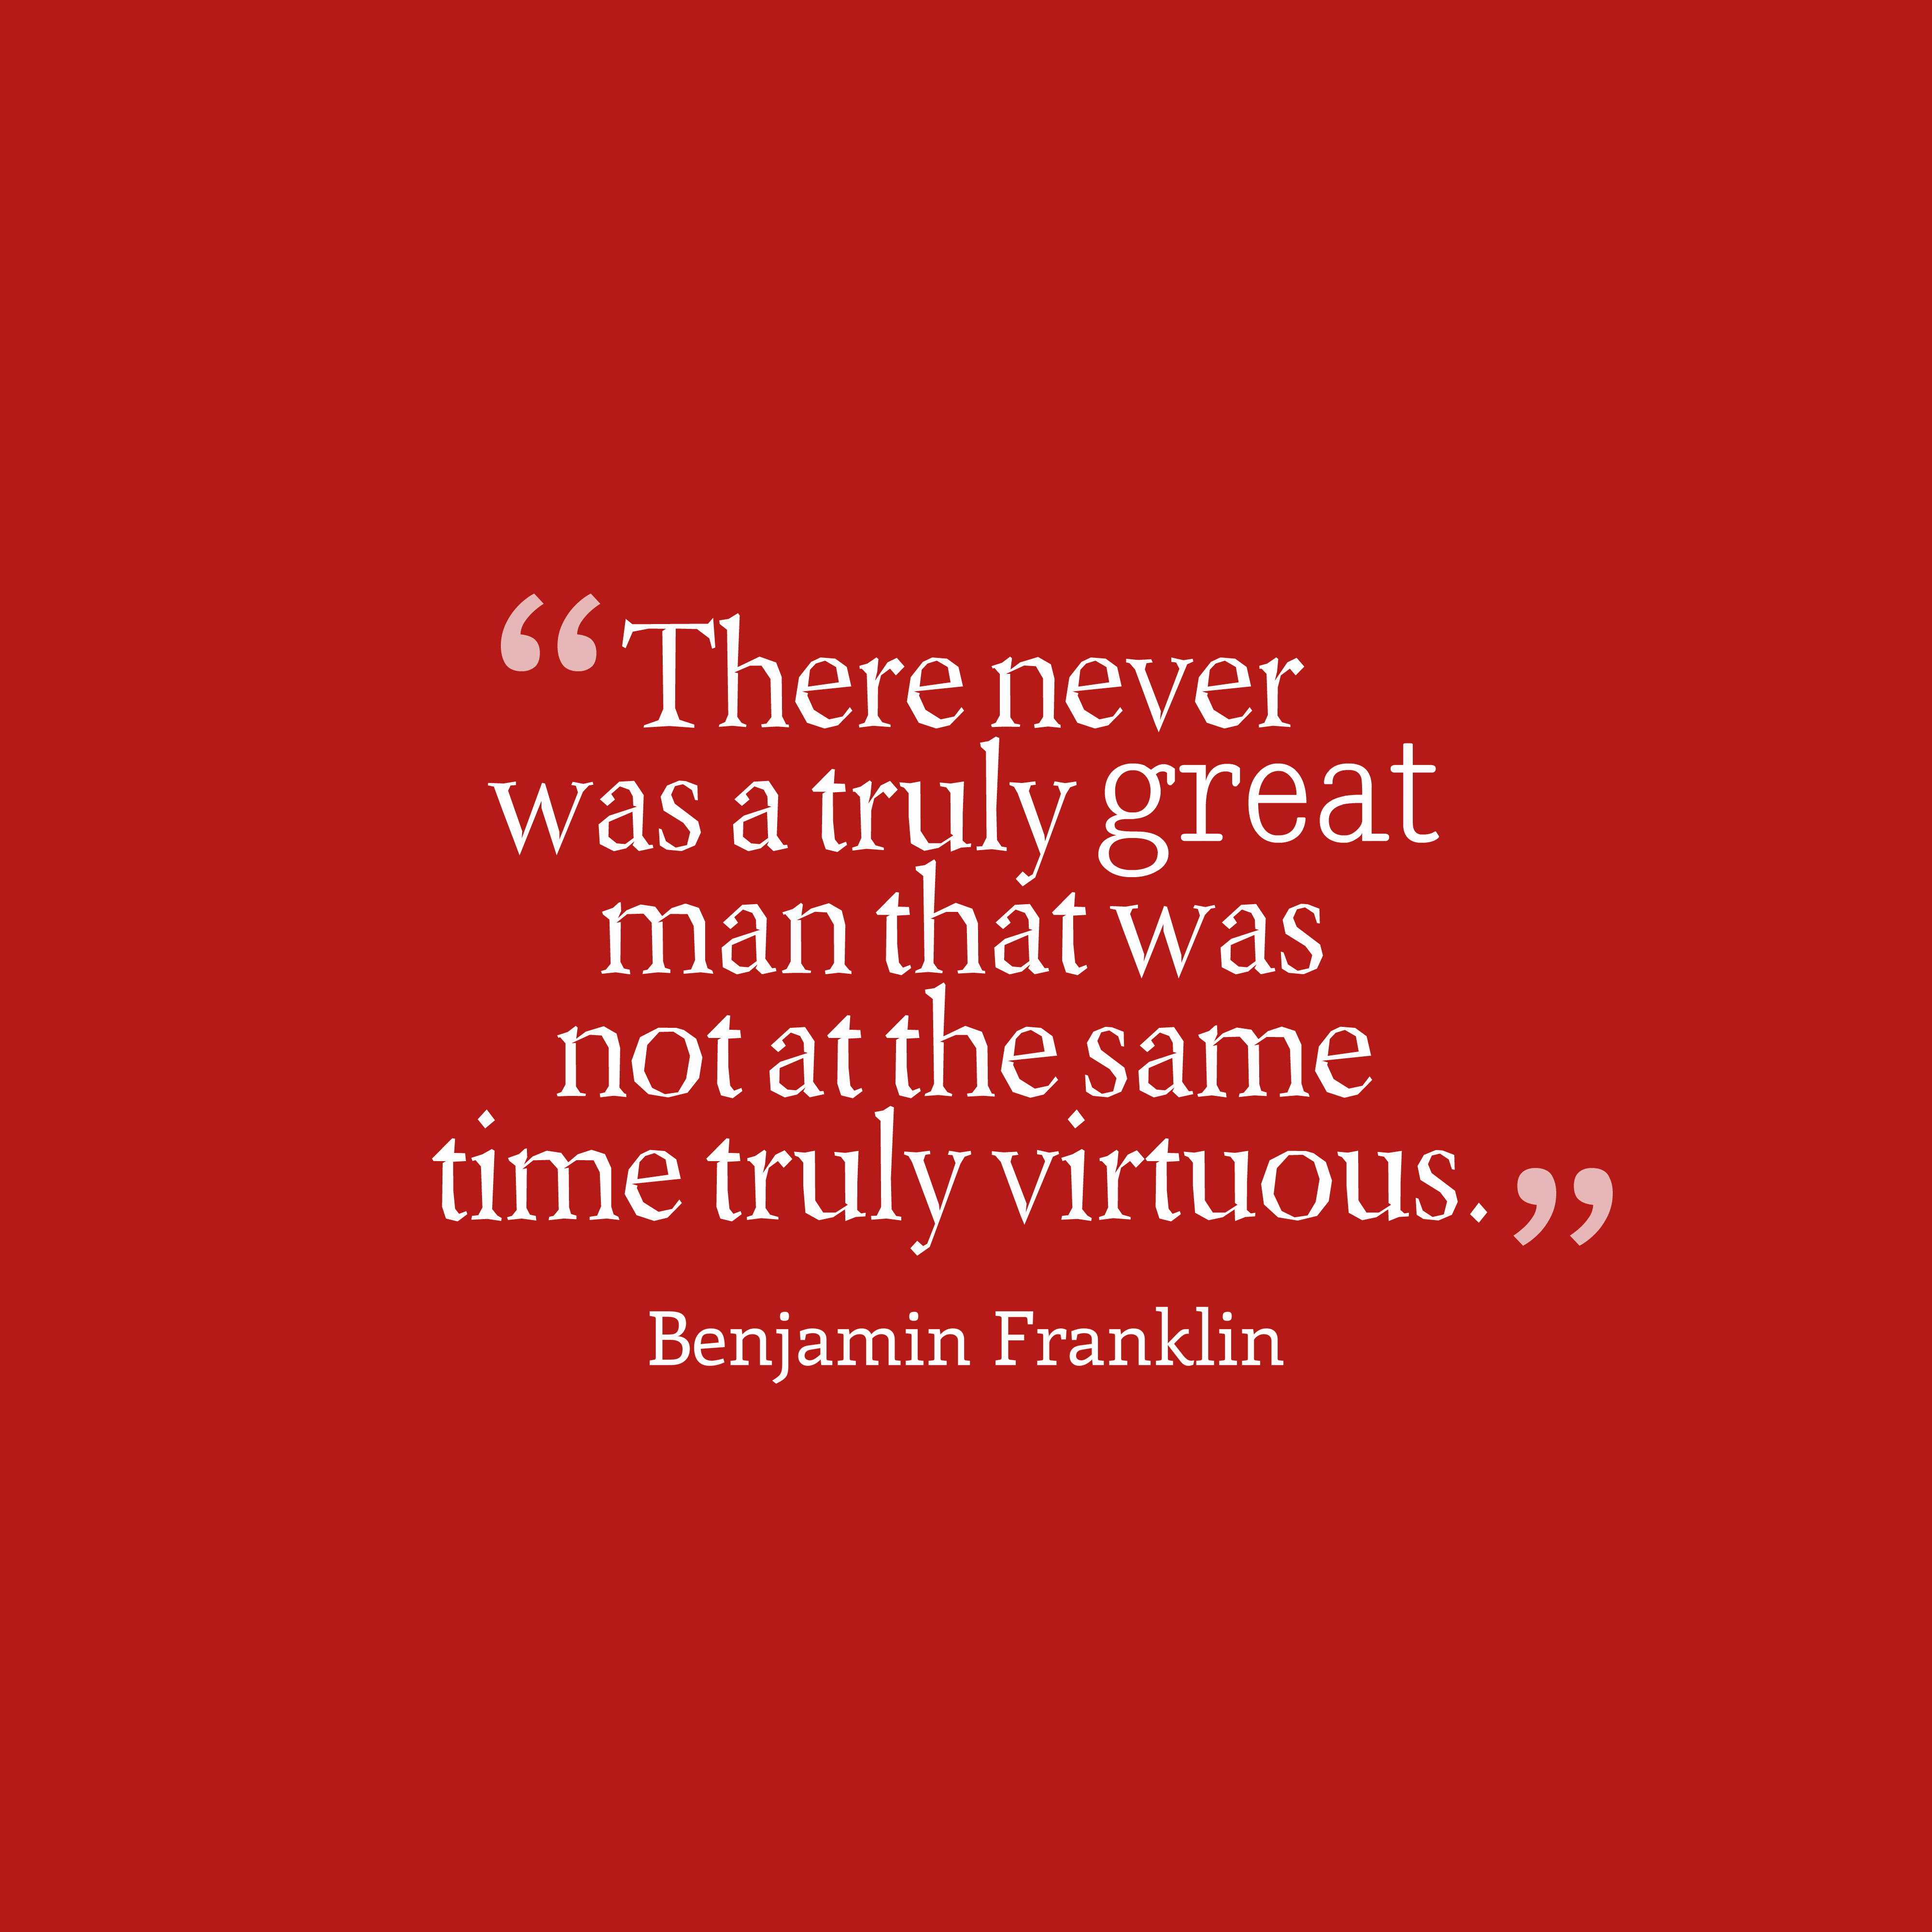 Quotes image of There never was a truly great man that was not at the same time truly virtuous.